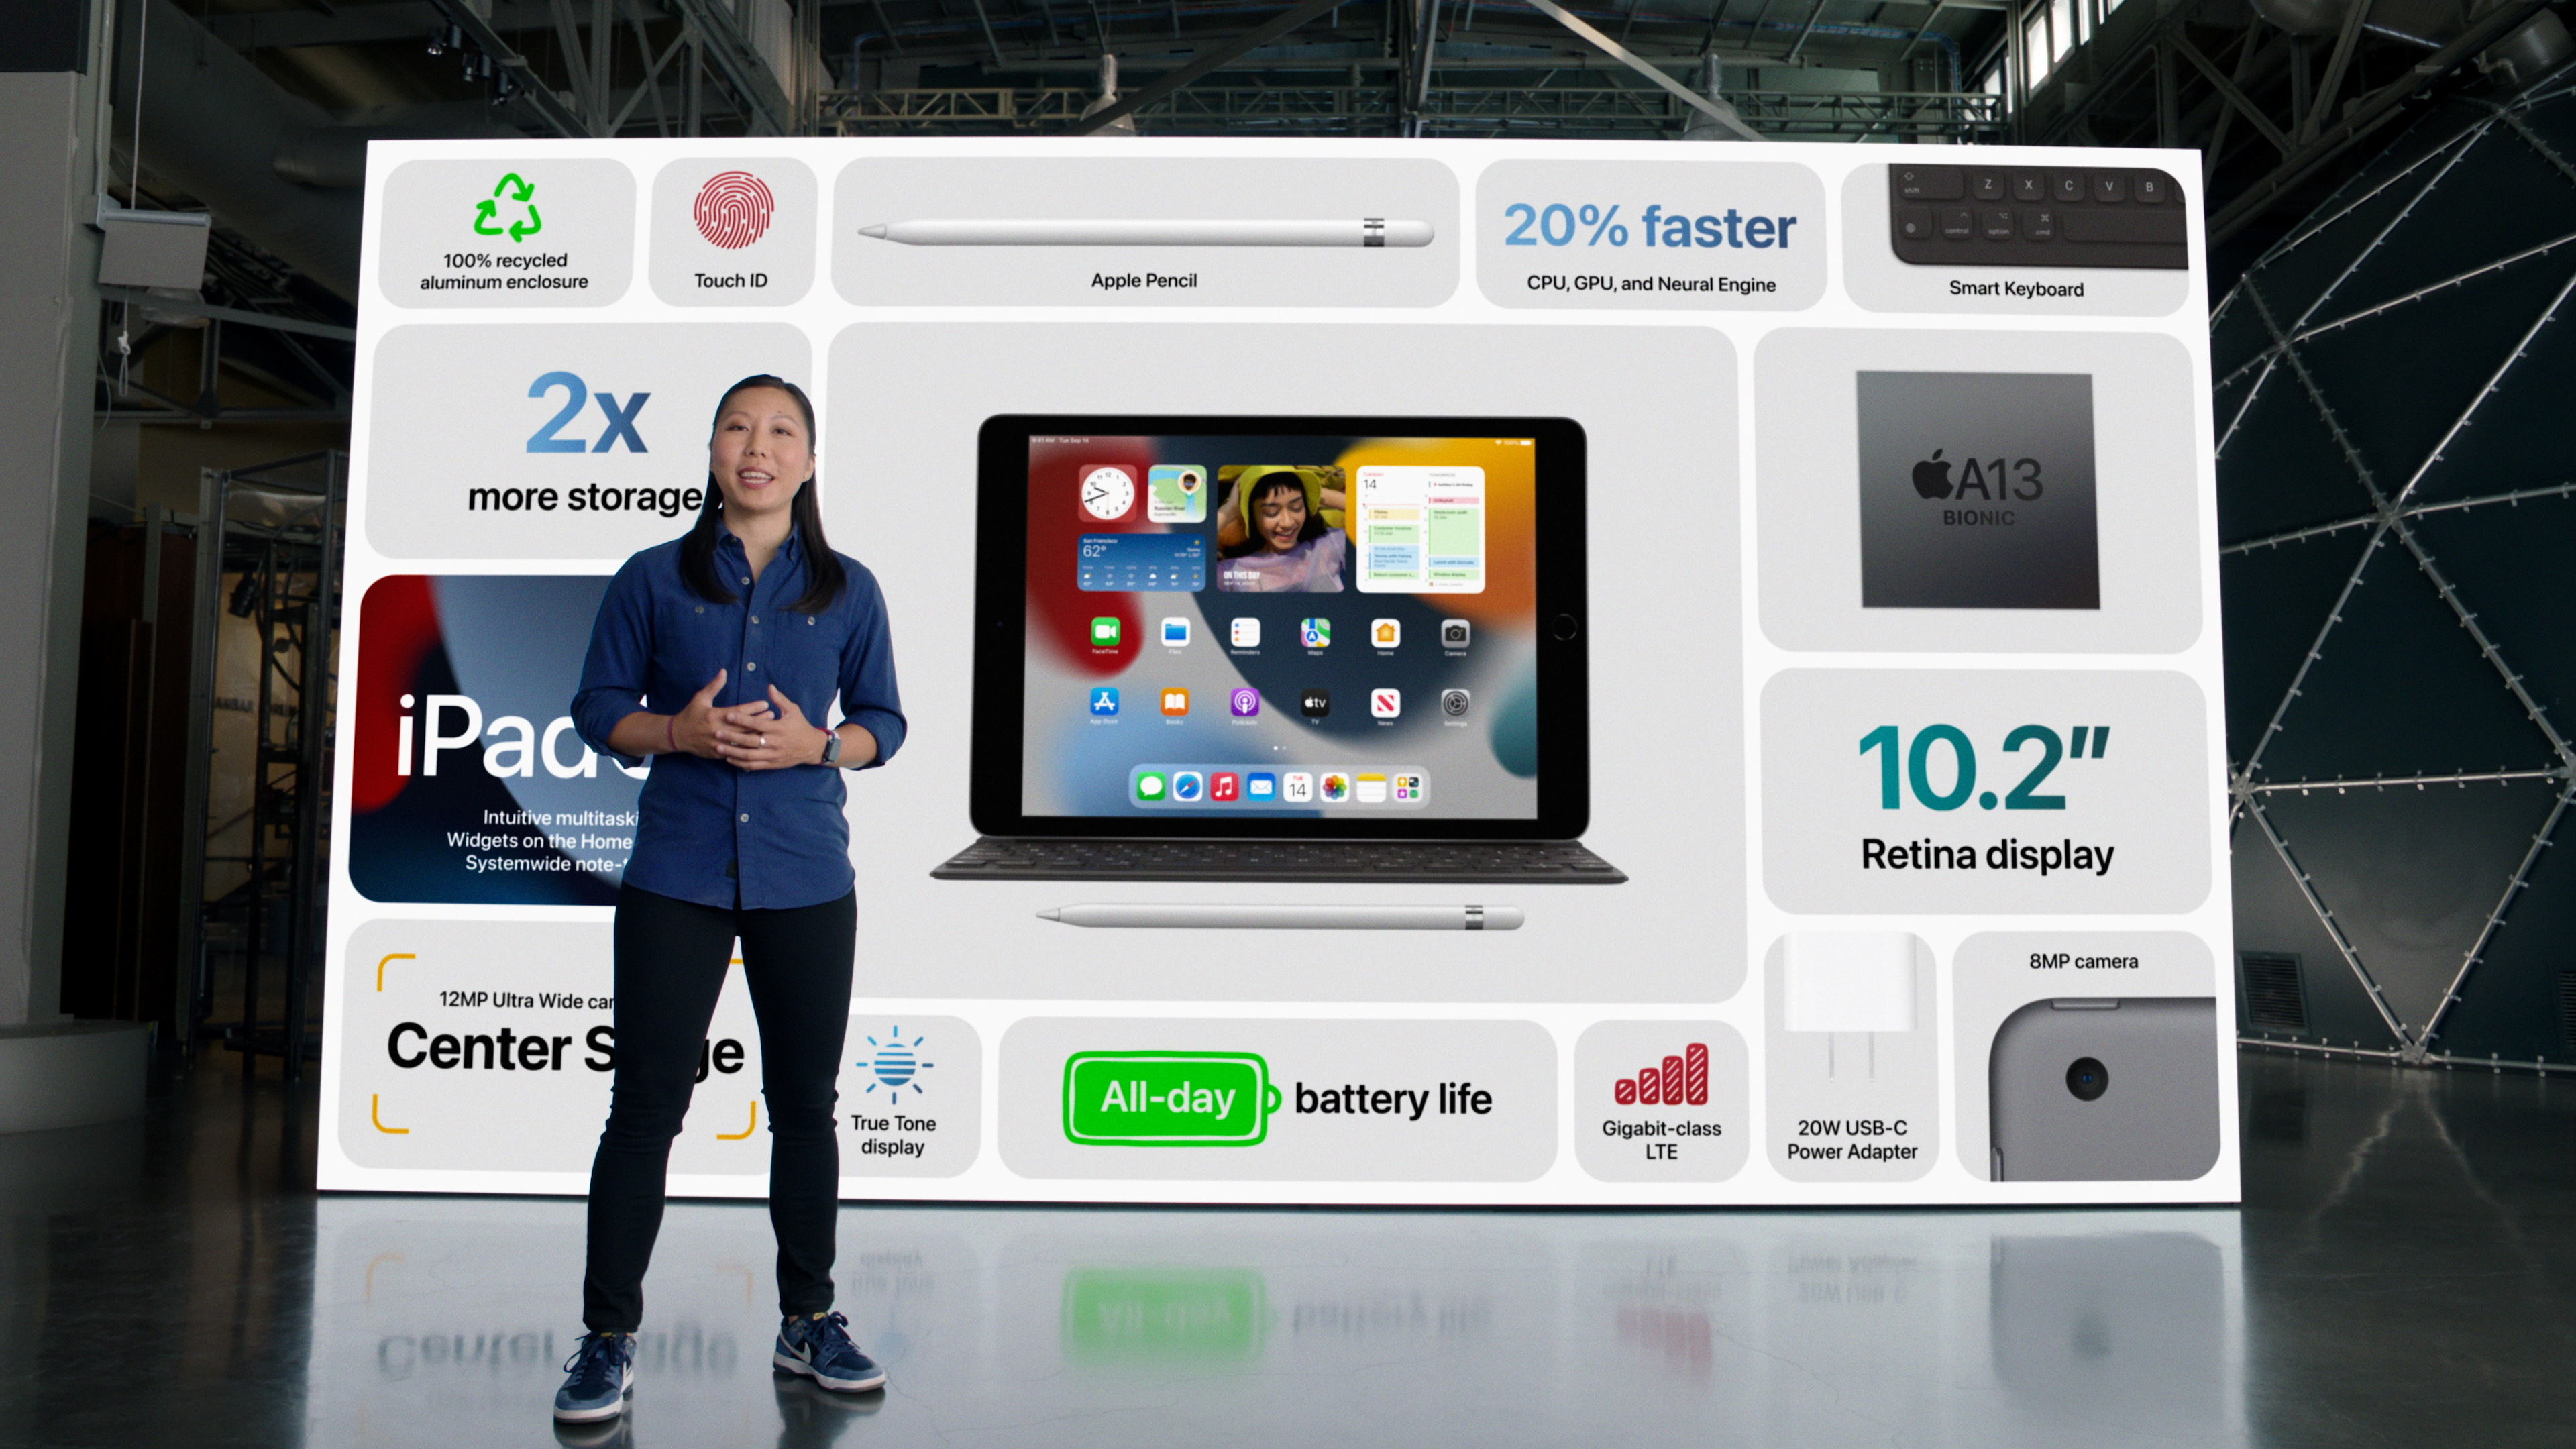 Apple's Melody Kuna talks about the enhanced features of the new iPad during a special event at Apple Park in Cupertino, California broadcast September 14, 2021 in a still image from video. Apple Inc/Handout via REUTERS